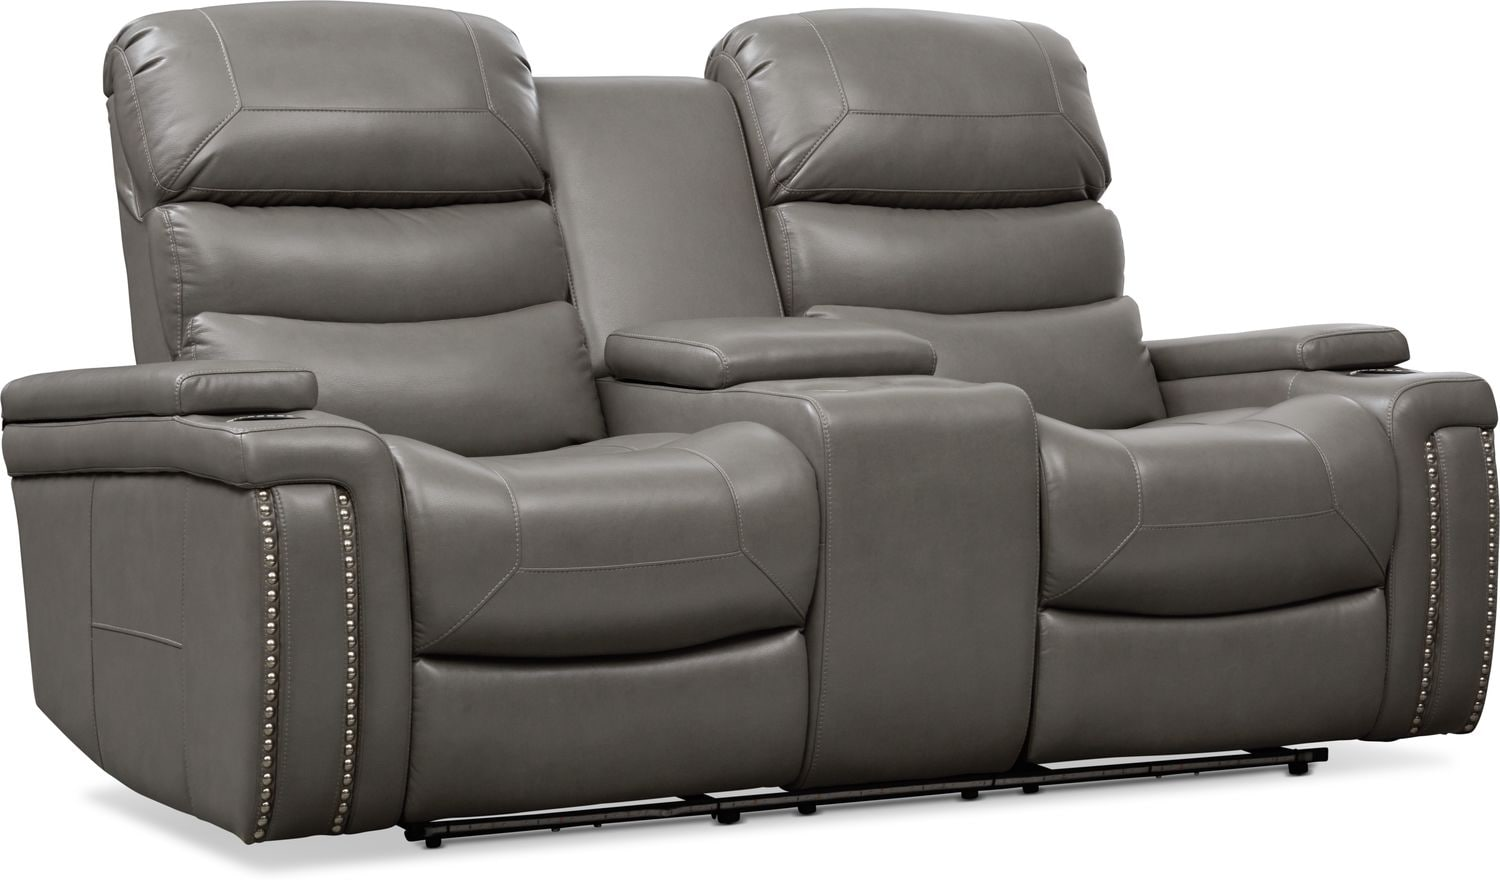 Living Room Furniture - Jackson Triple-Power Reclining Loveseat